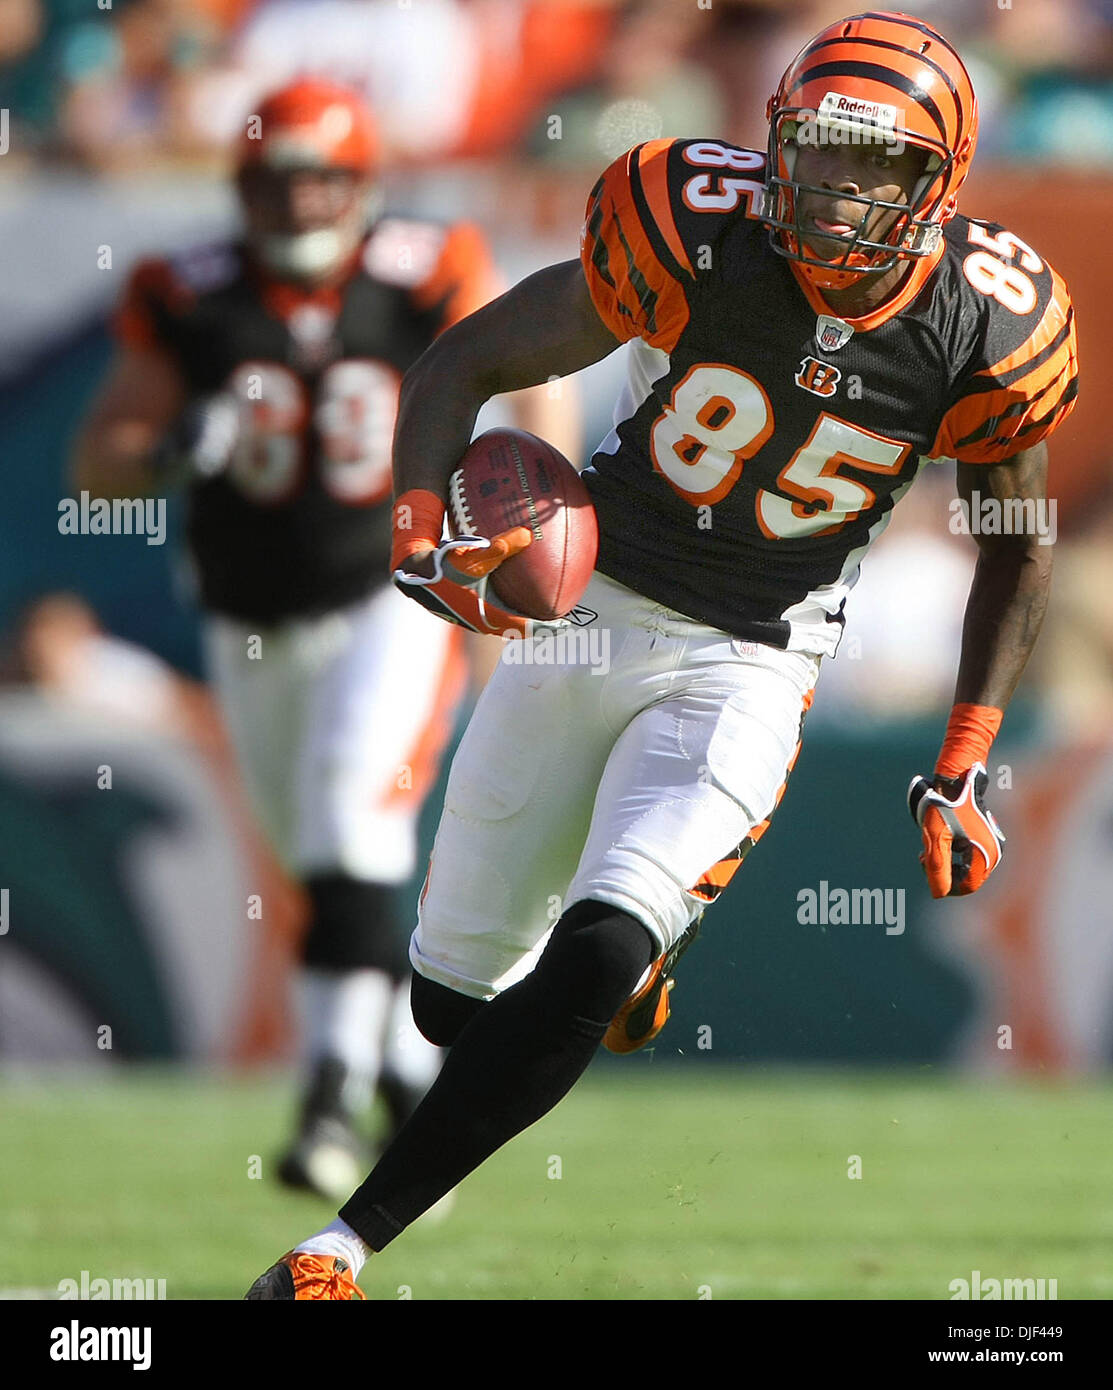 Dec 30, 2007 - Miami Gardens, Florida, USA - Bengals wide receiver CHAD JOHNSON runs for a touchdown during second qt. action against the Dolphins during second half action Sunday at Dolphin stadium in Miami Gardens. (Credit Image: © Bill Ingram/Palm Beach Post/ZUMA Press) RESTRICTIONS: * USA Tabloids Rights OUT * - Stock Image